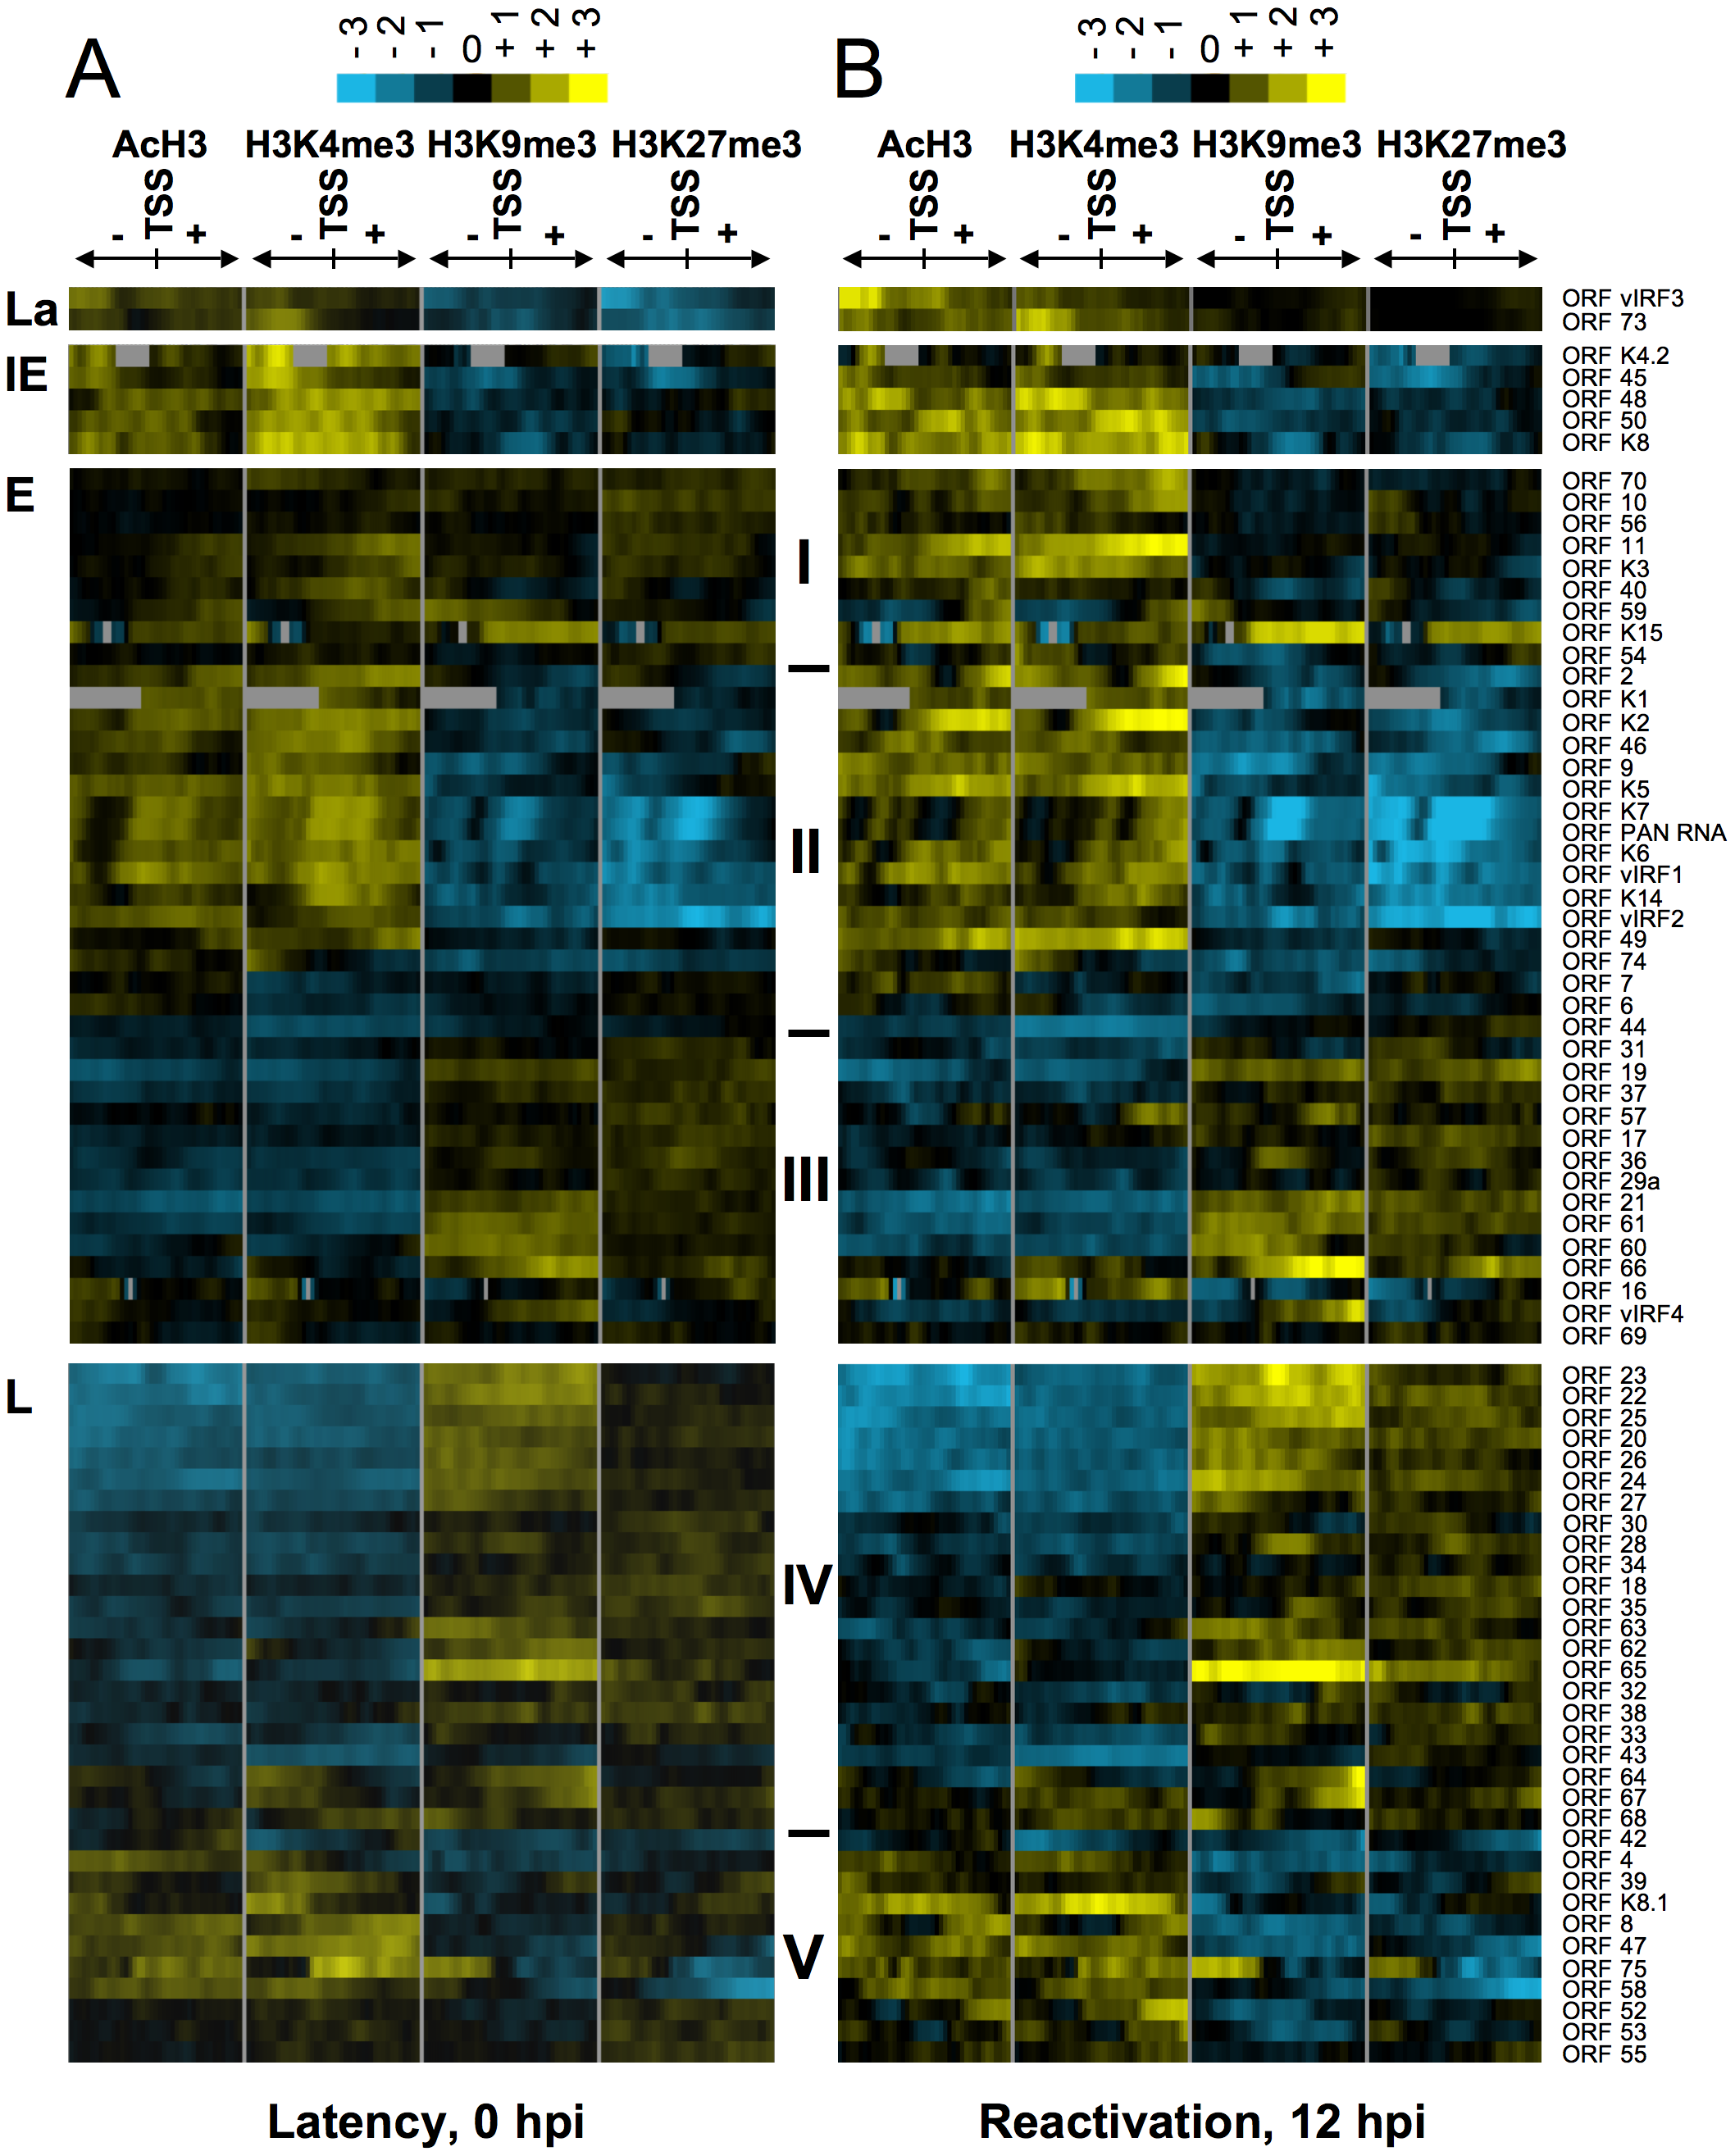 Hierarchical clustering of histone modifications associated with the regulatory regions of viral genes.